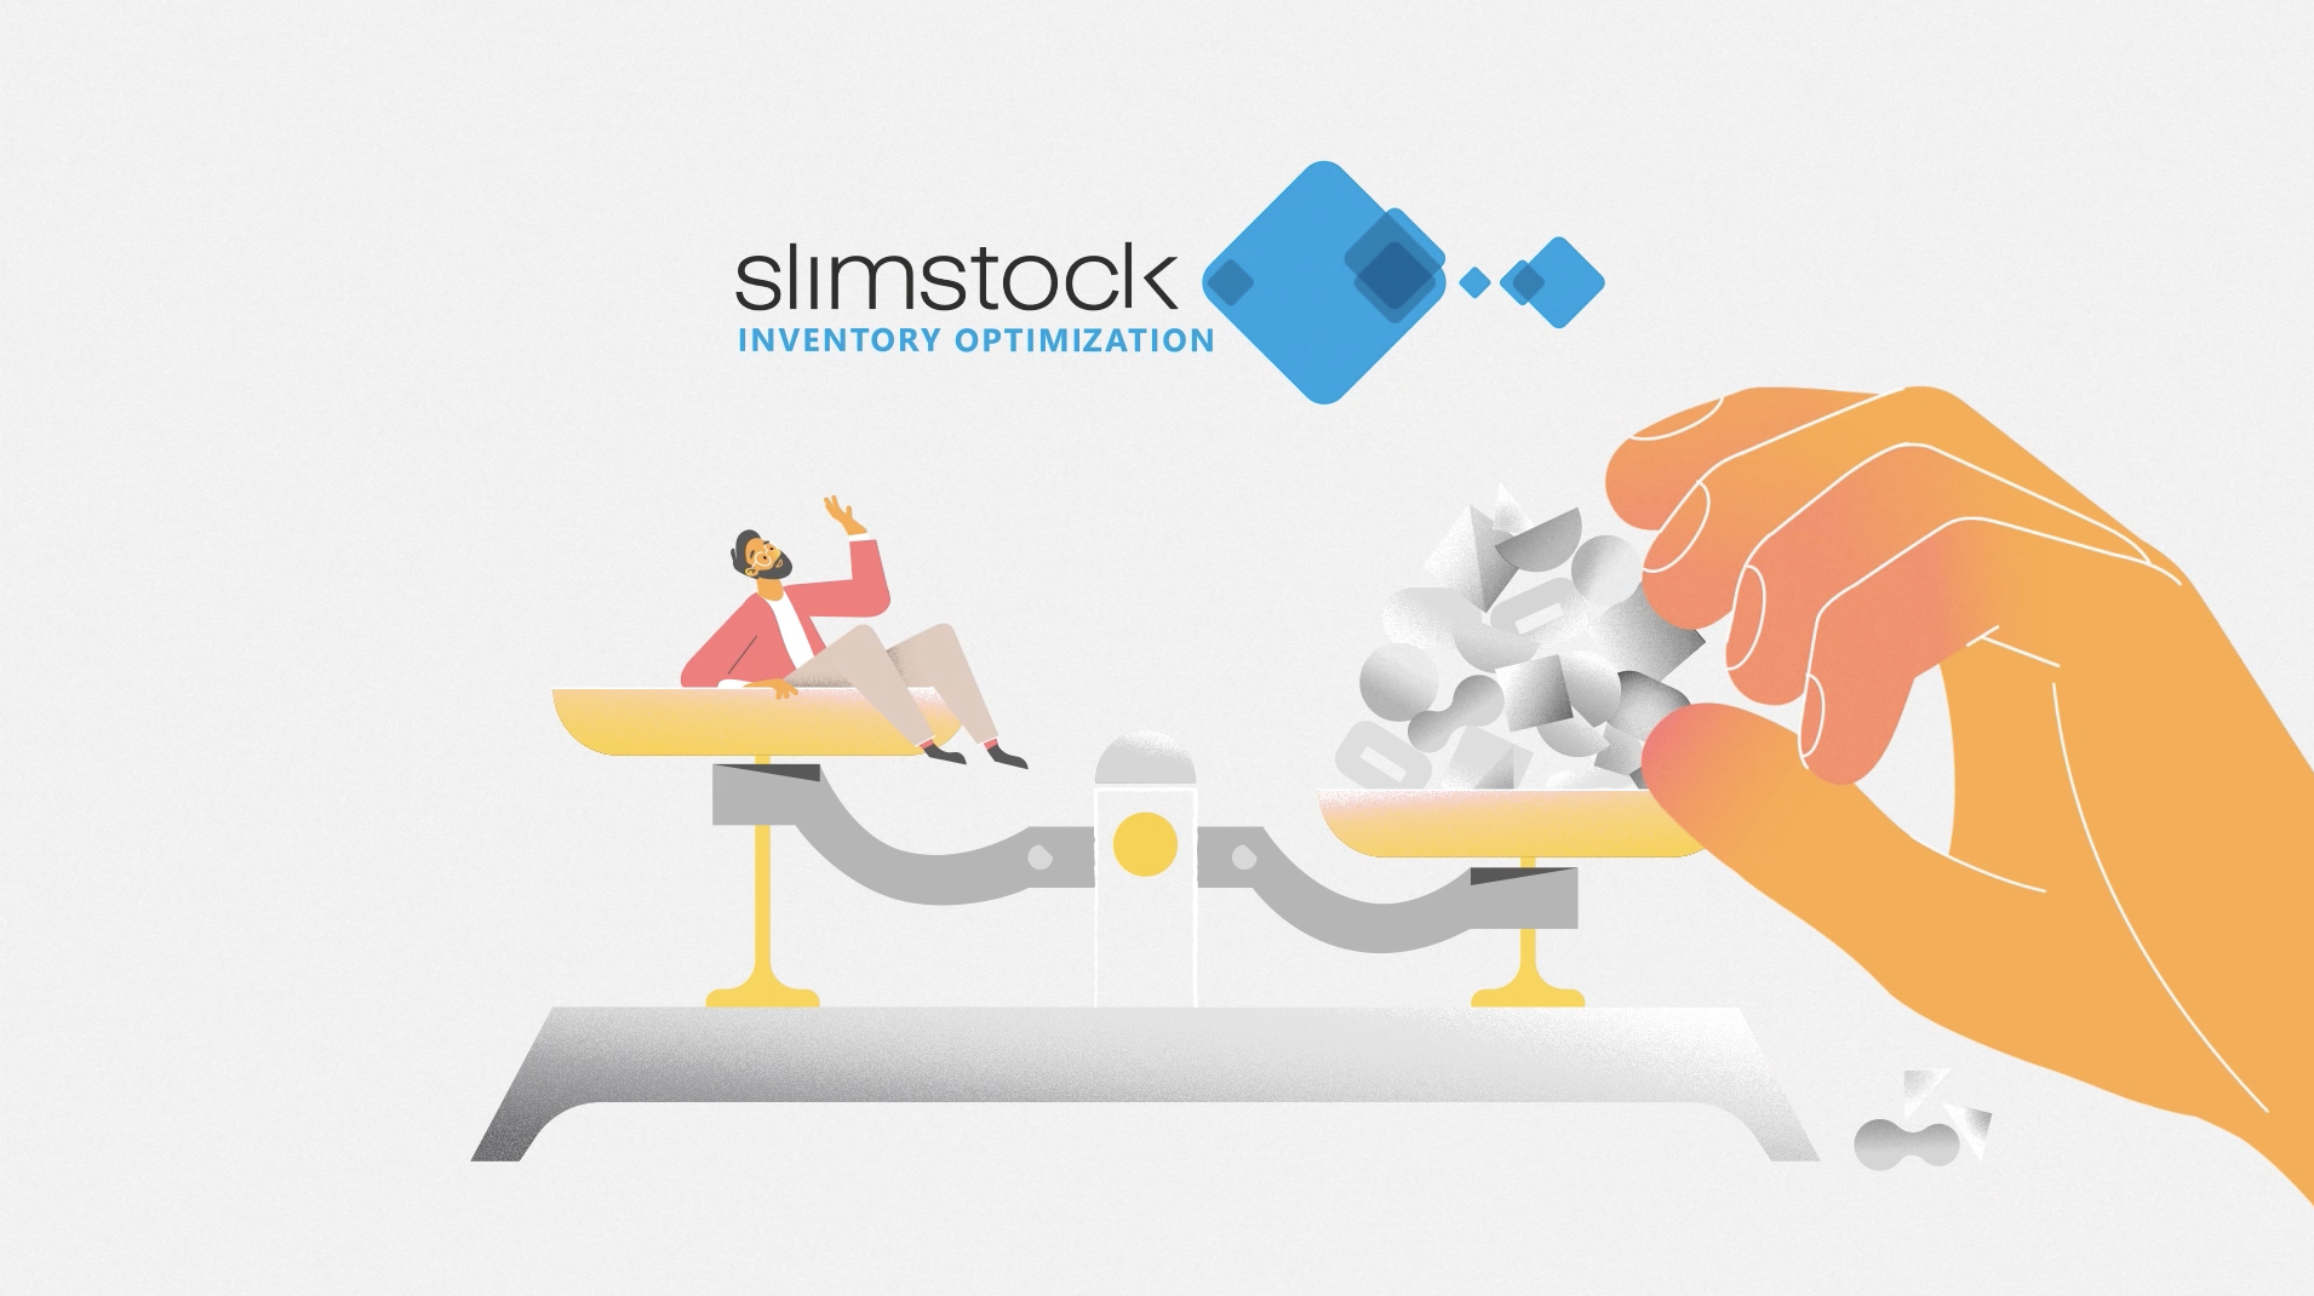 Slimstock Inventory Optimization